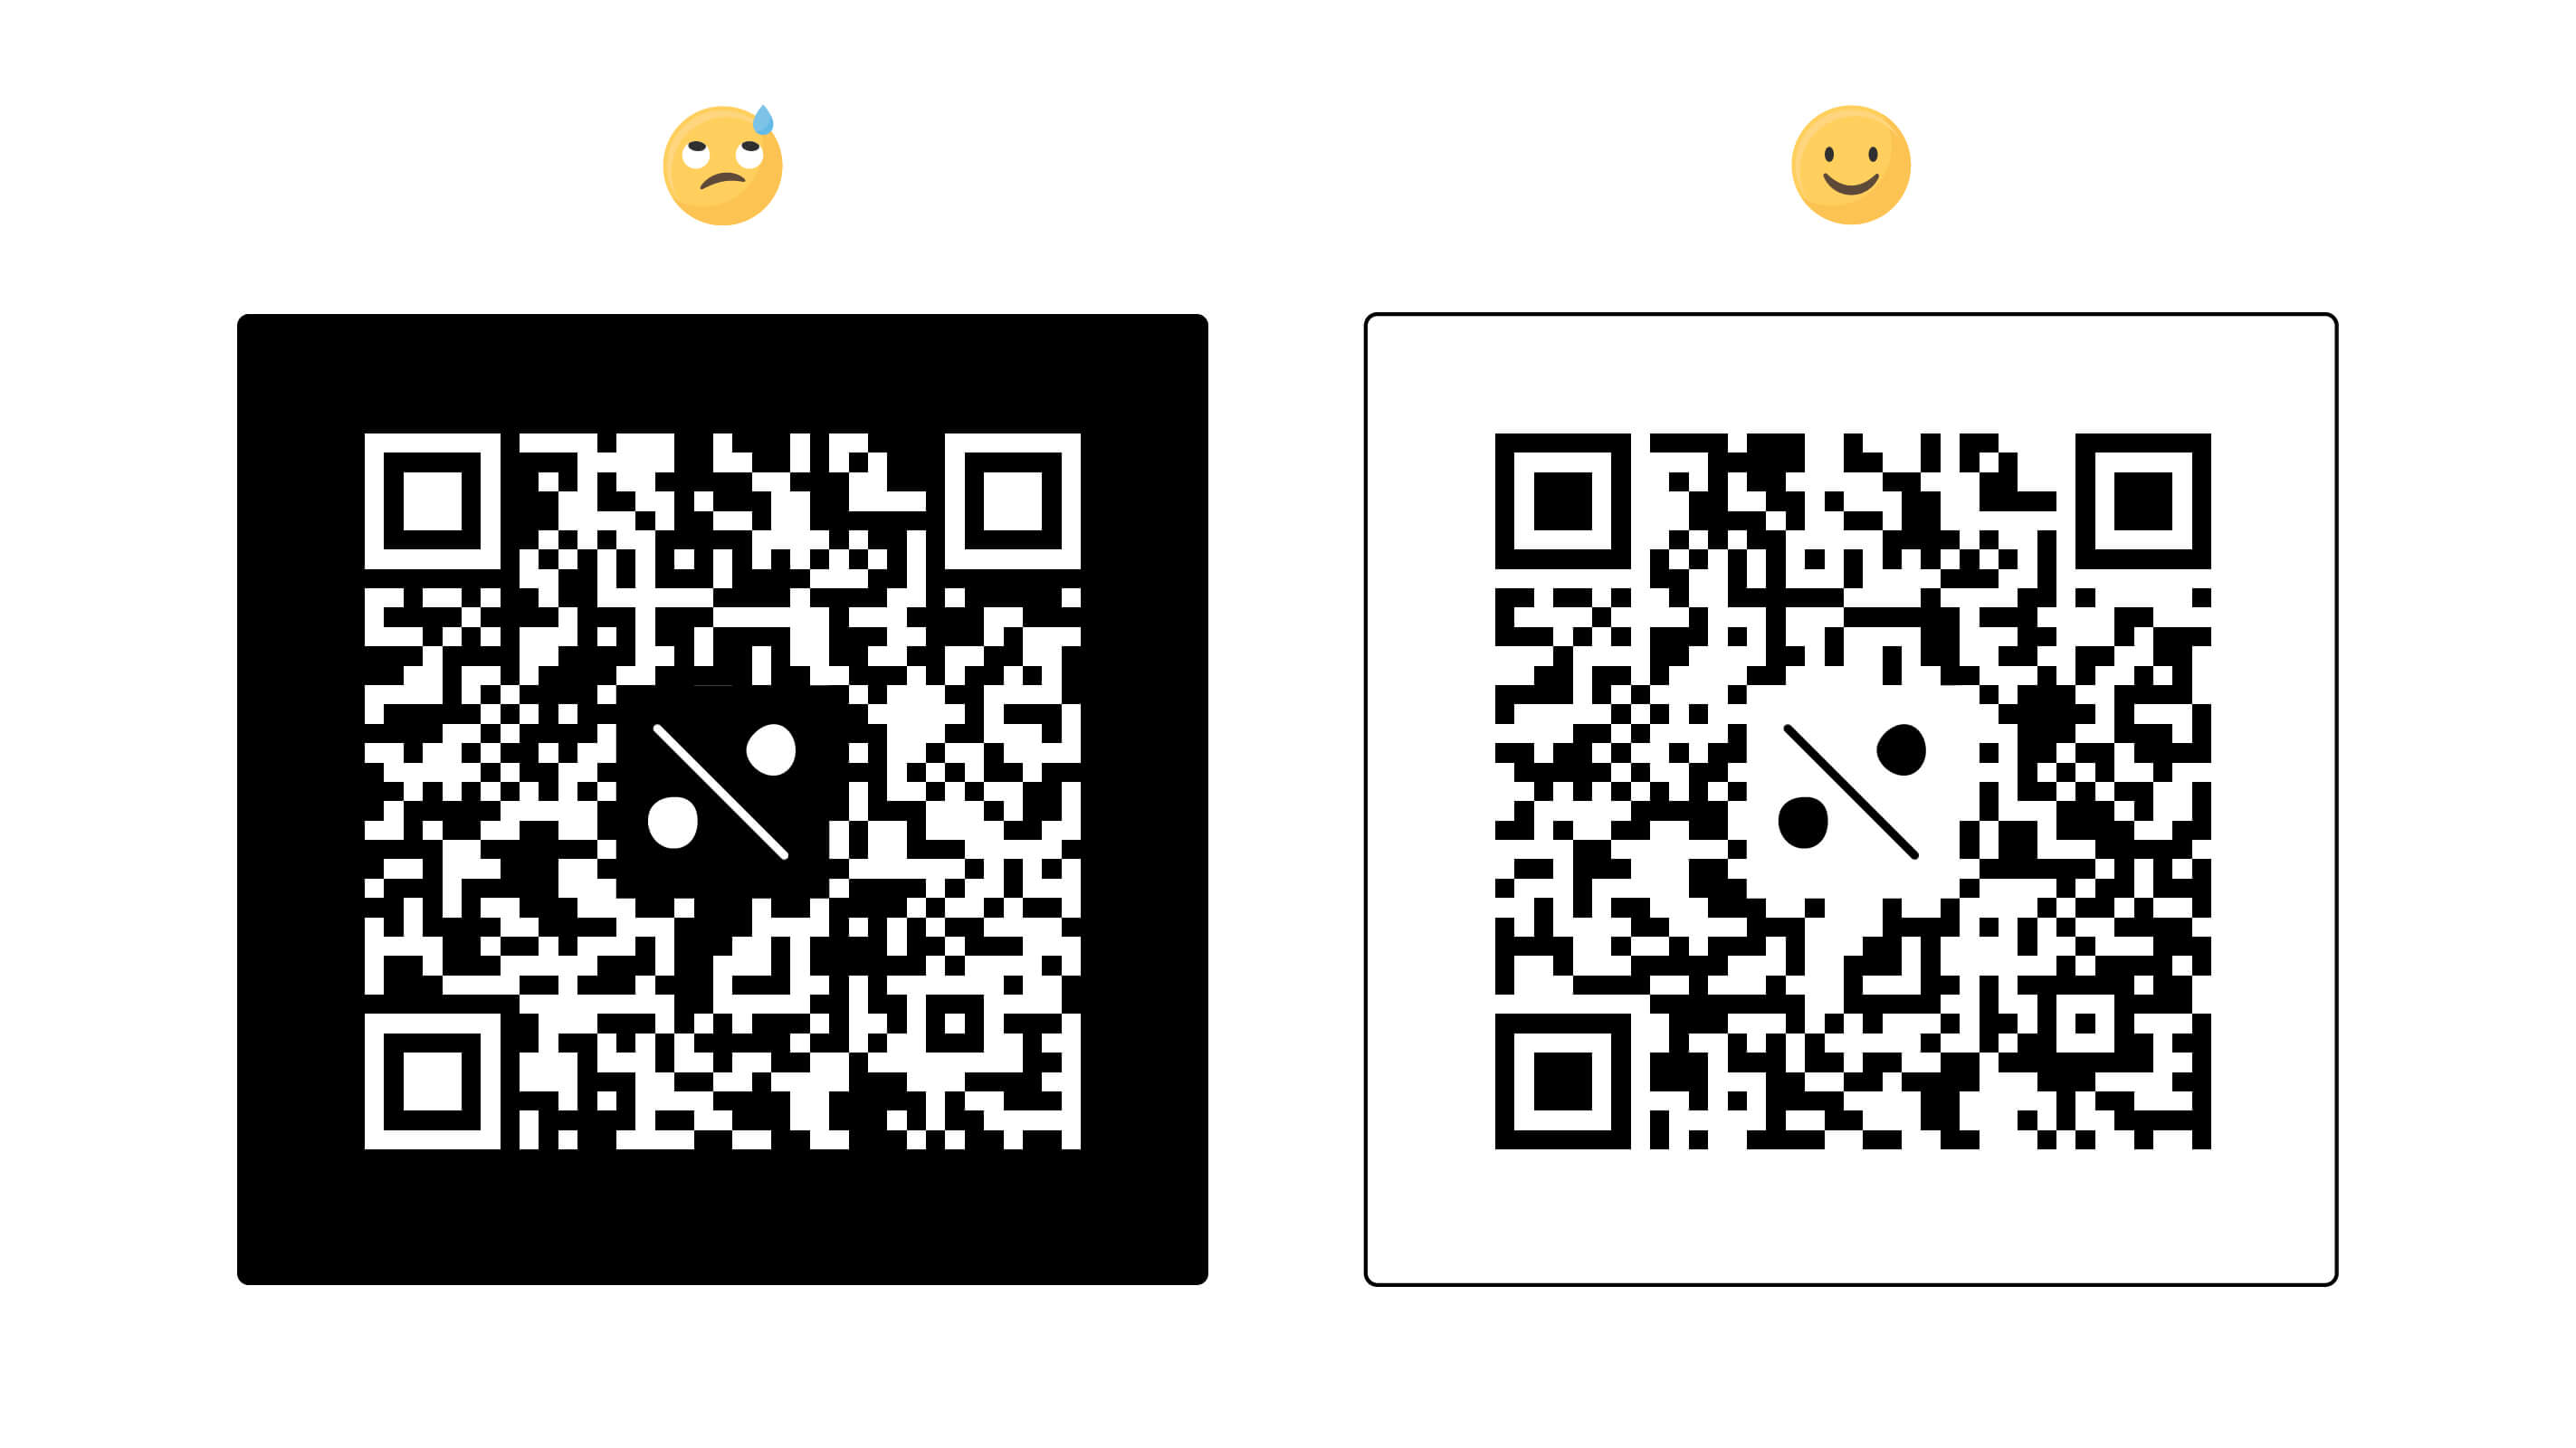 qr code background example